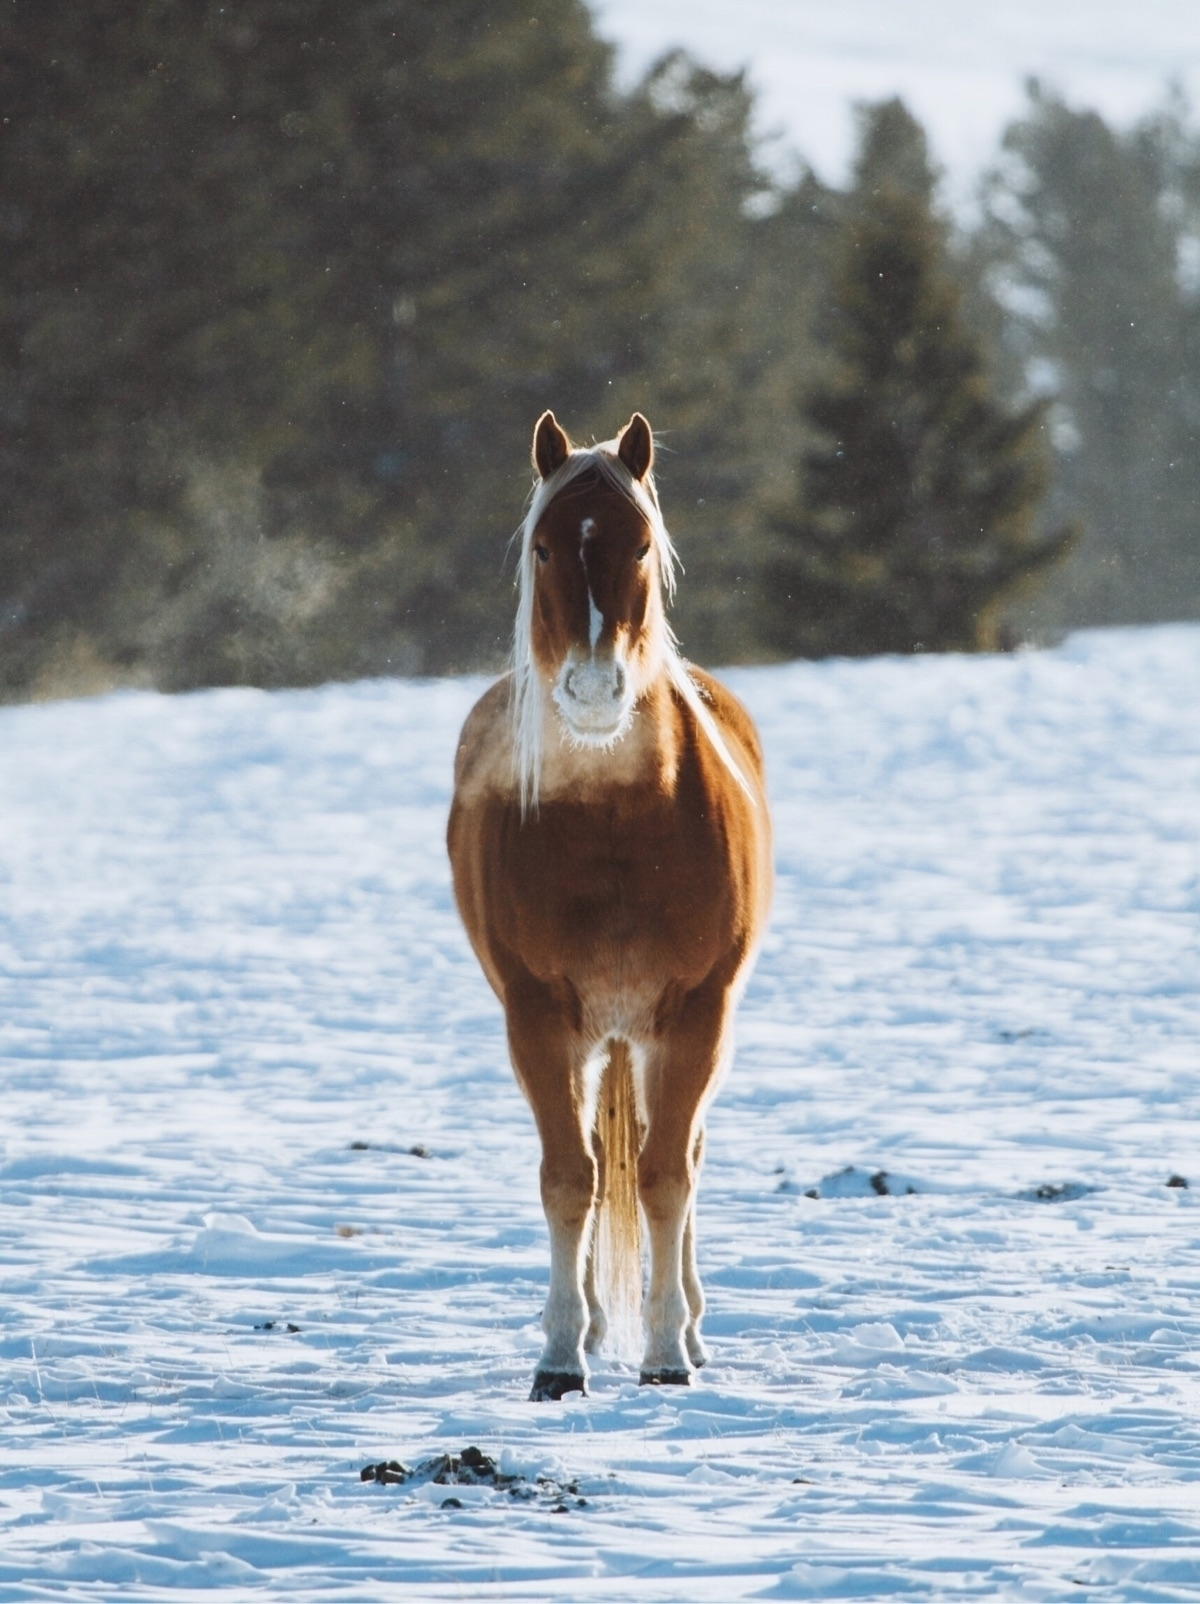 horse enduring cold days winter - chriscauble | ello